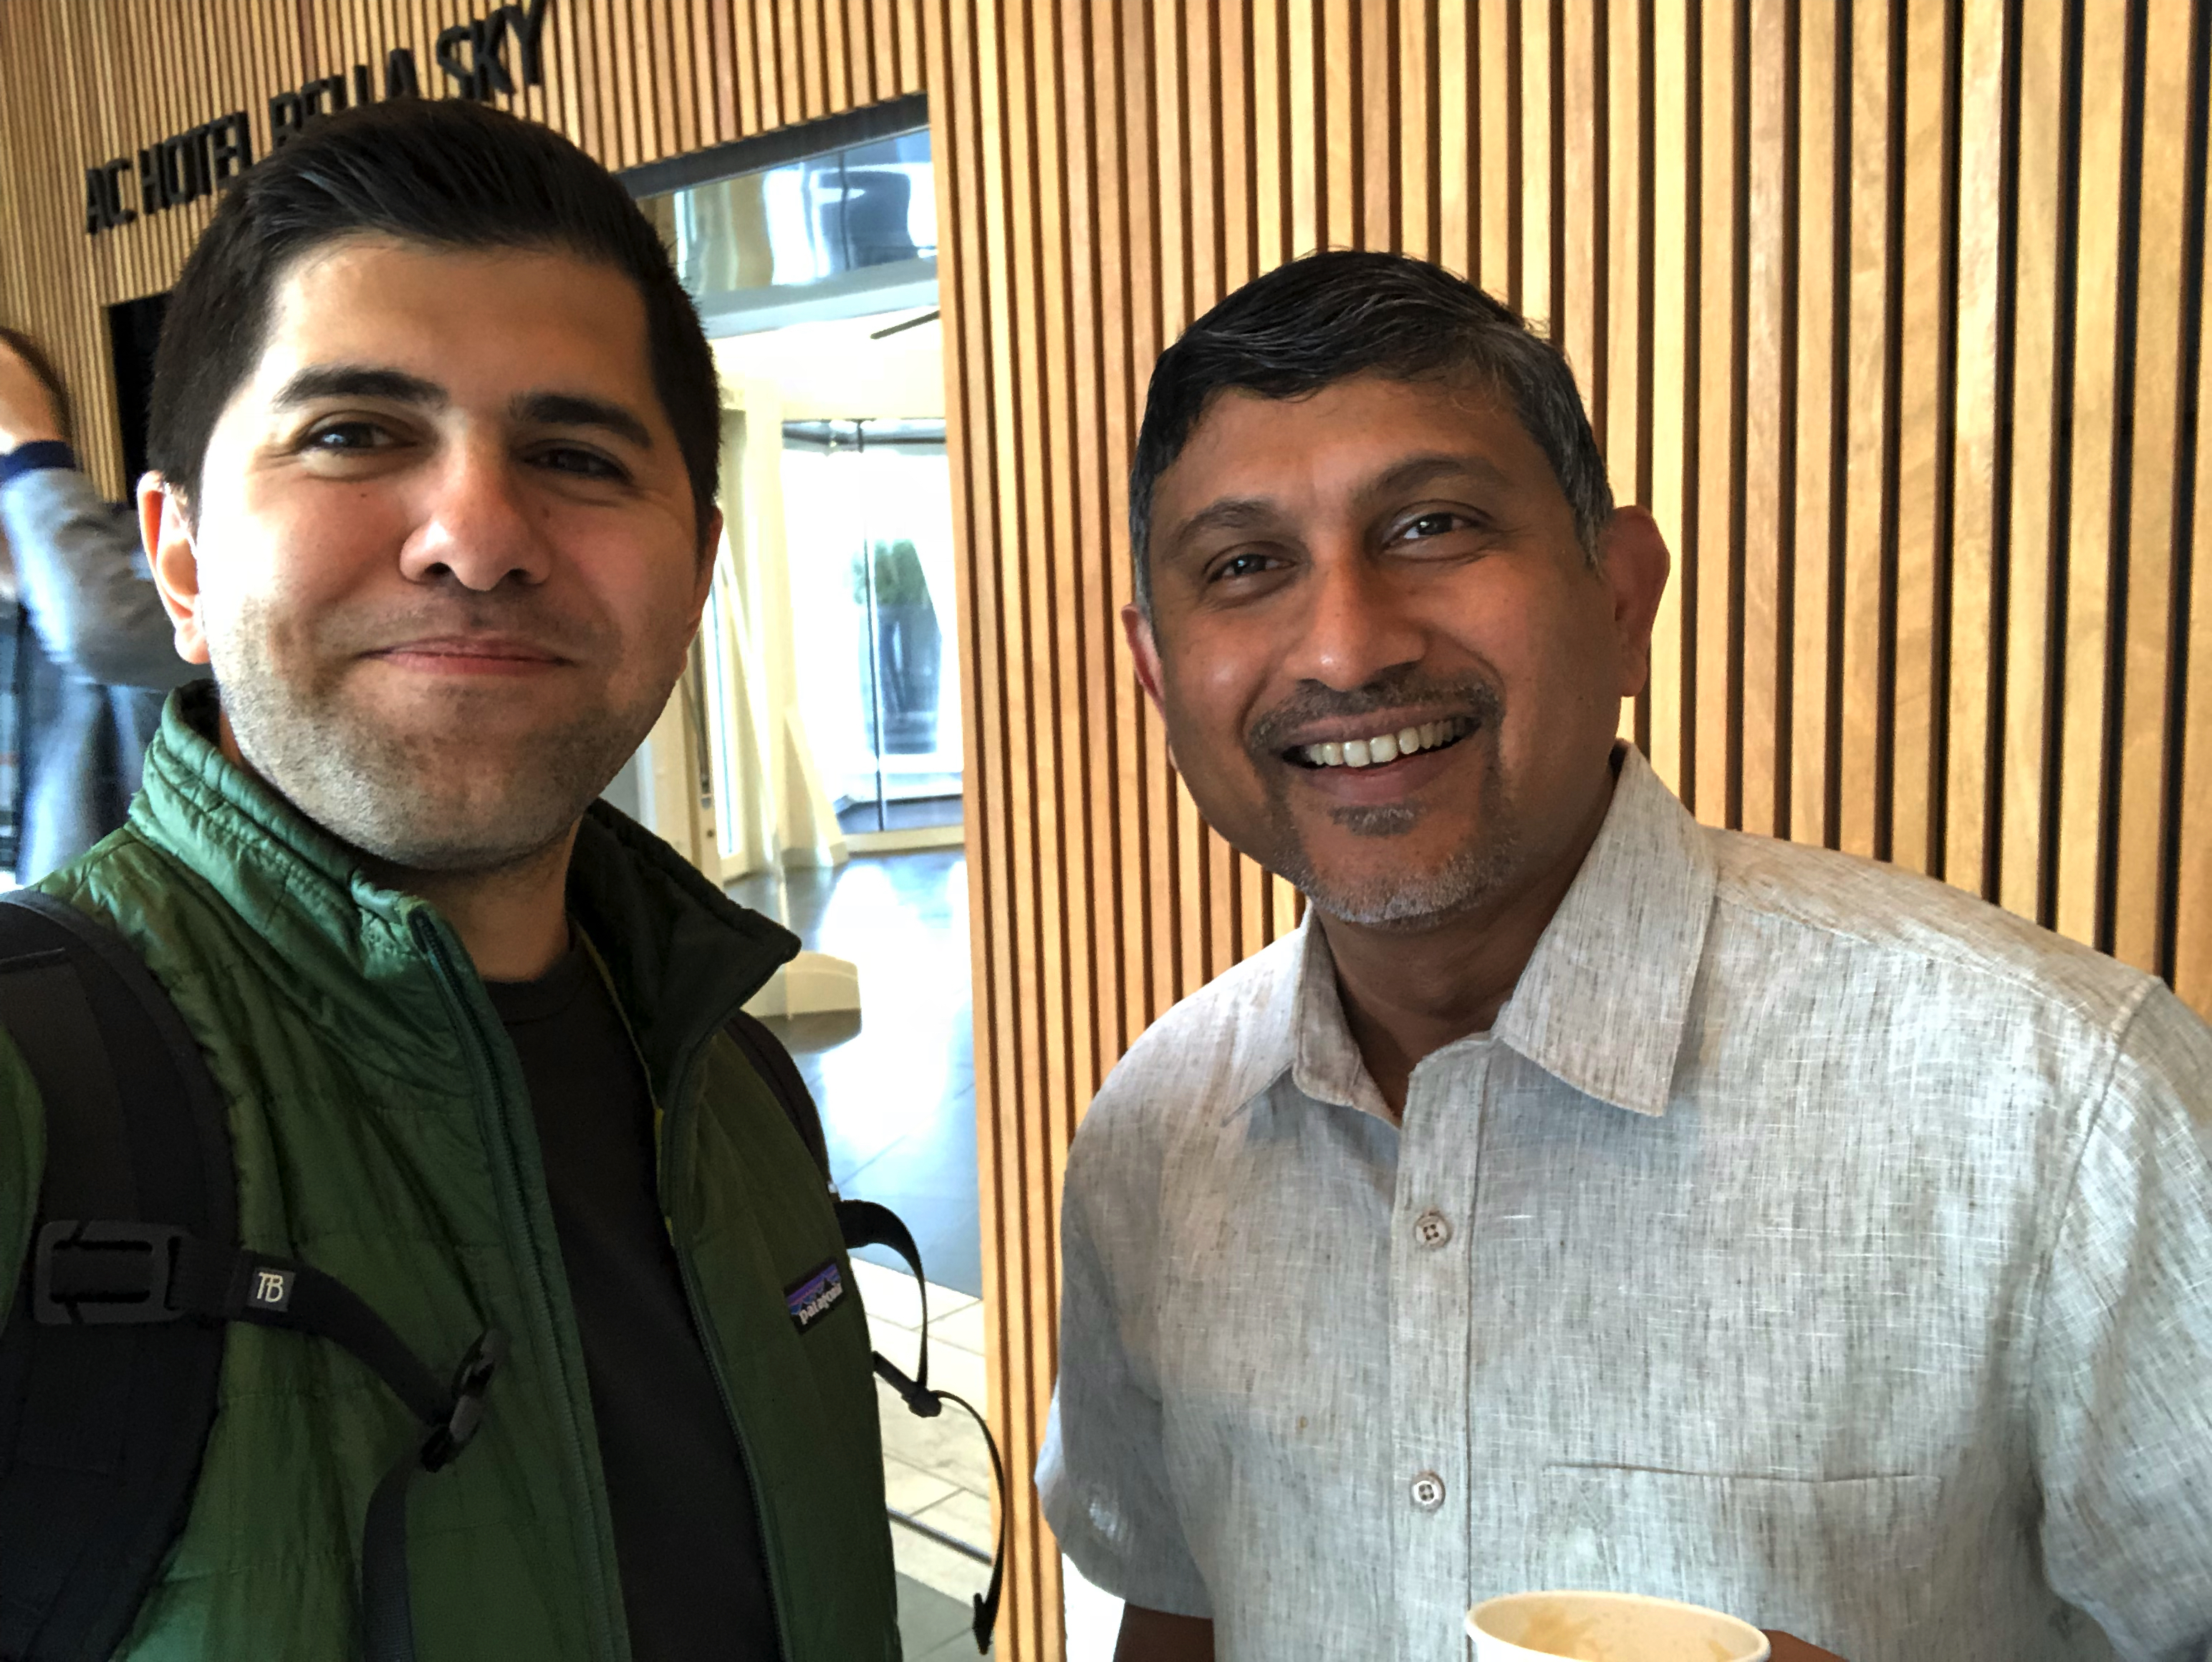 Sugu and me at the KubeCon 2018 conference in Copenhagen, Denmark